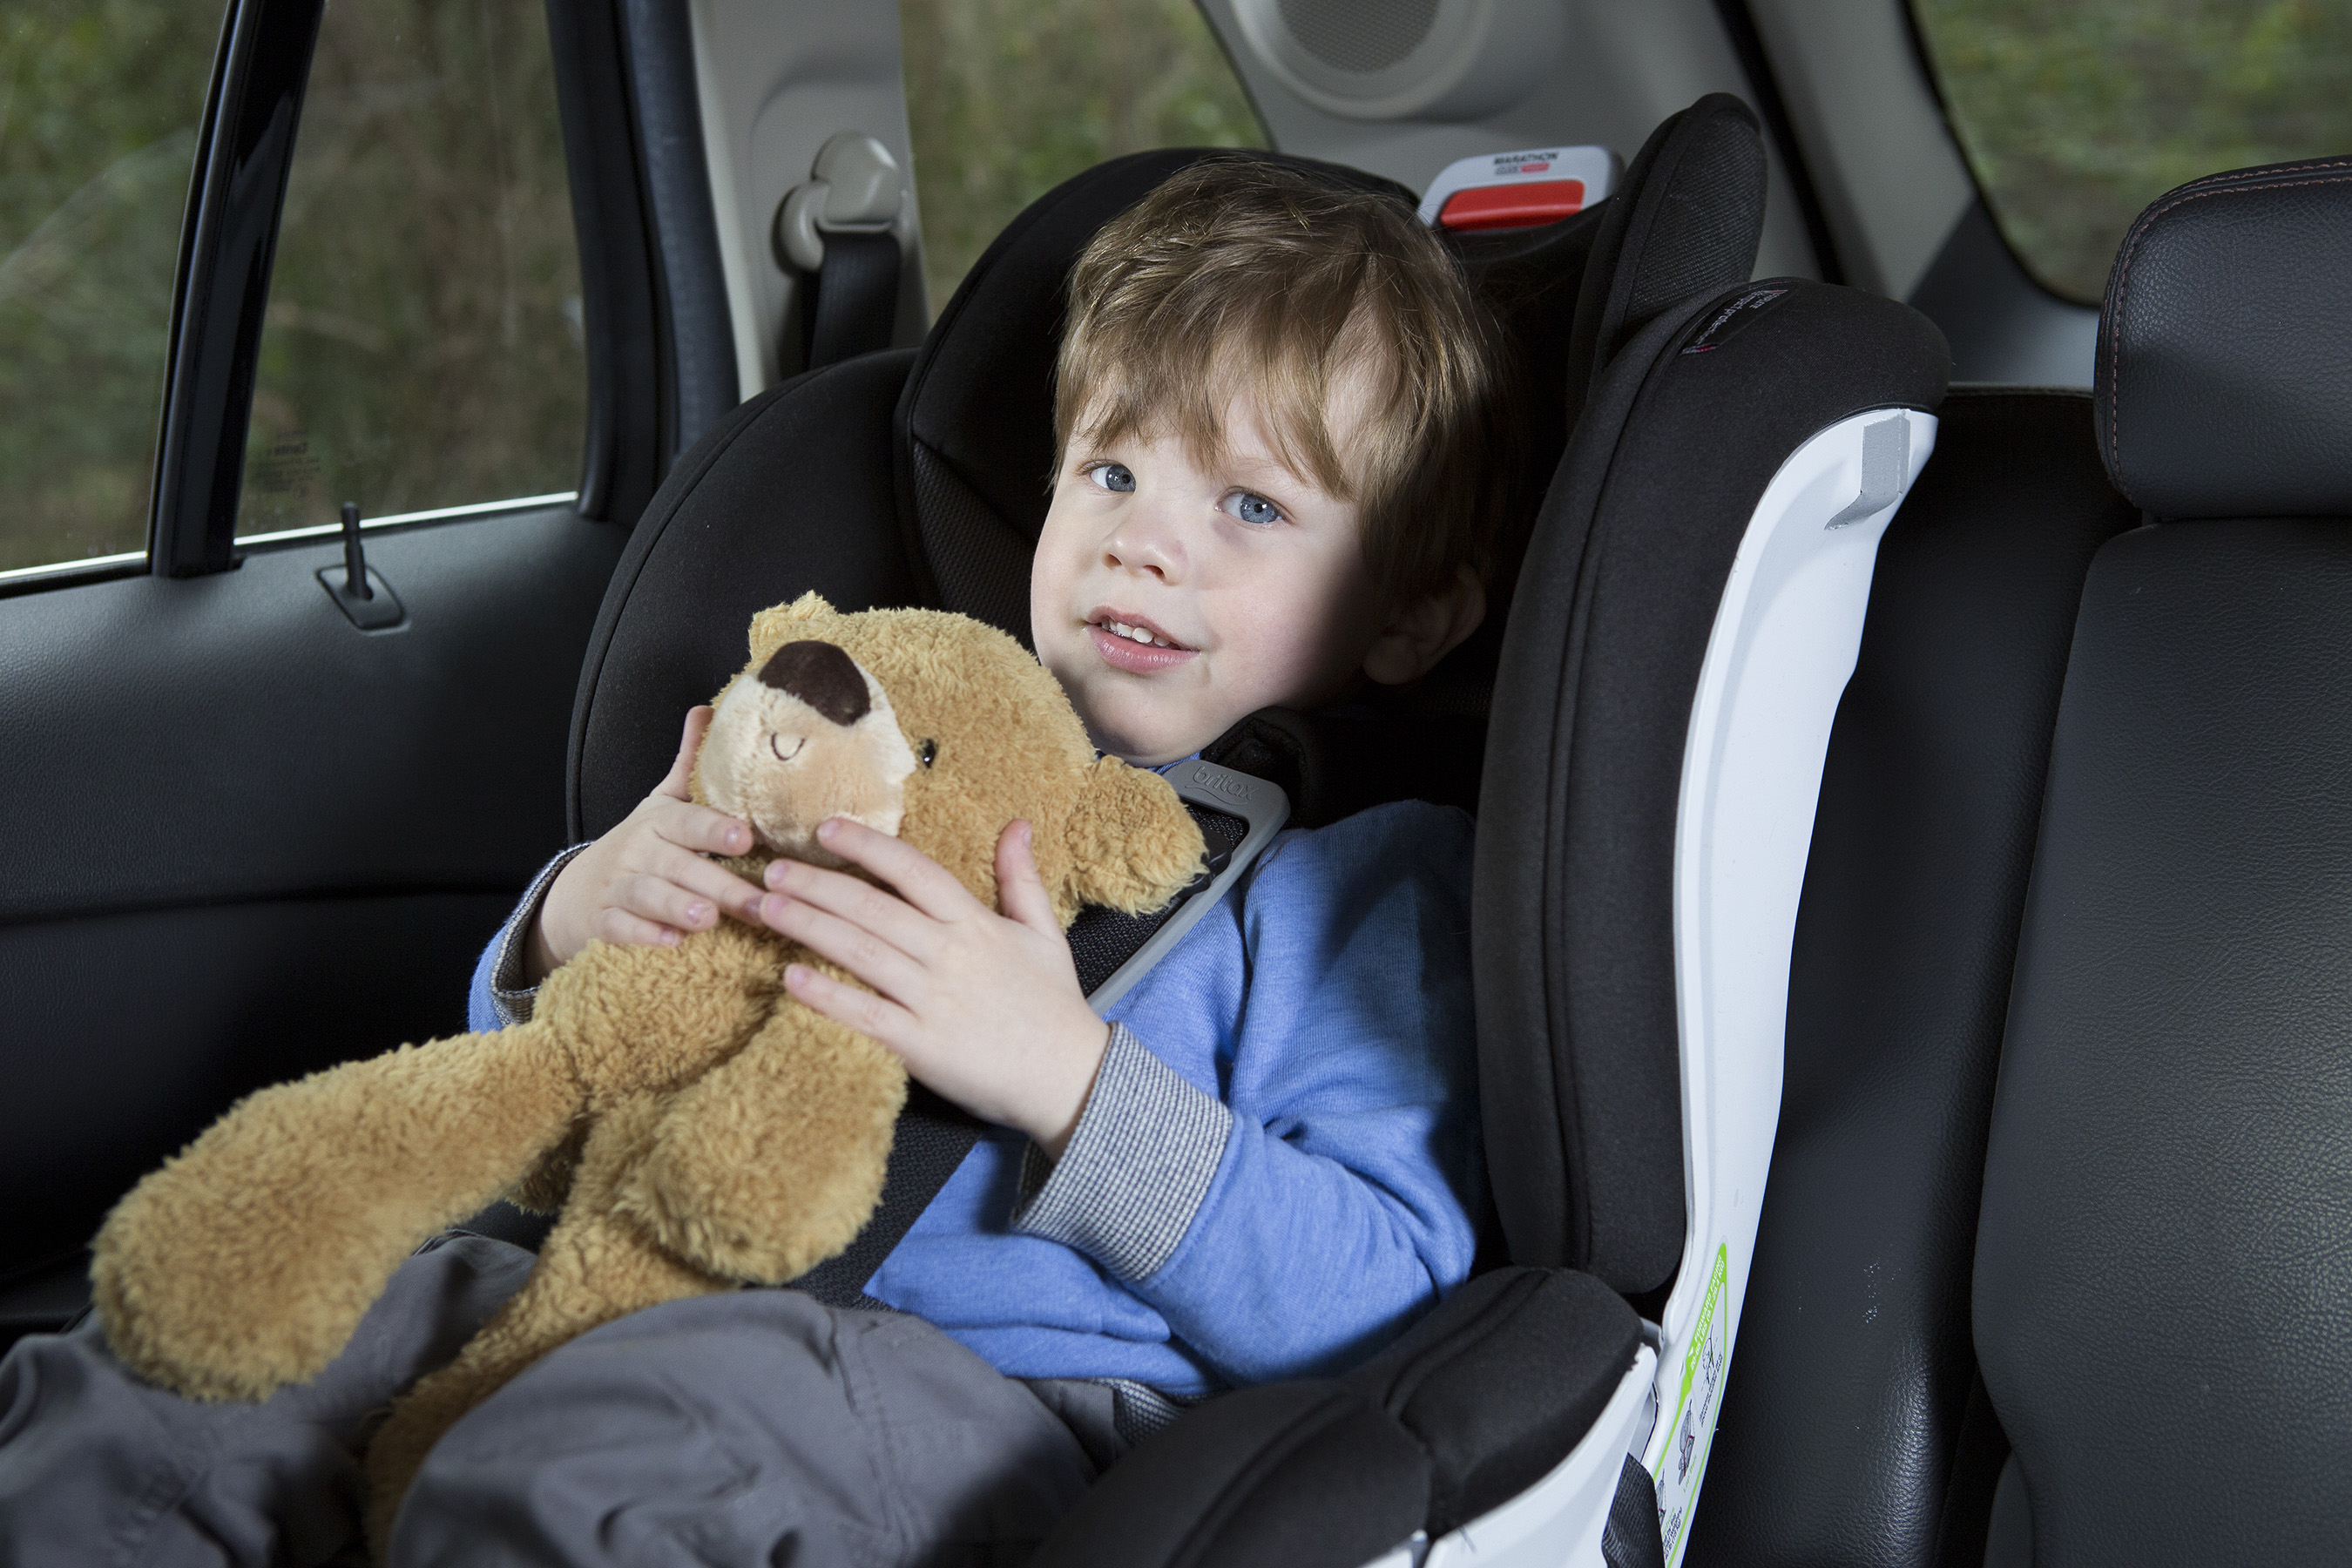 The National Safety Council urges you to hang up and drive. Your child deserves to arrive safely. #CallsKill